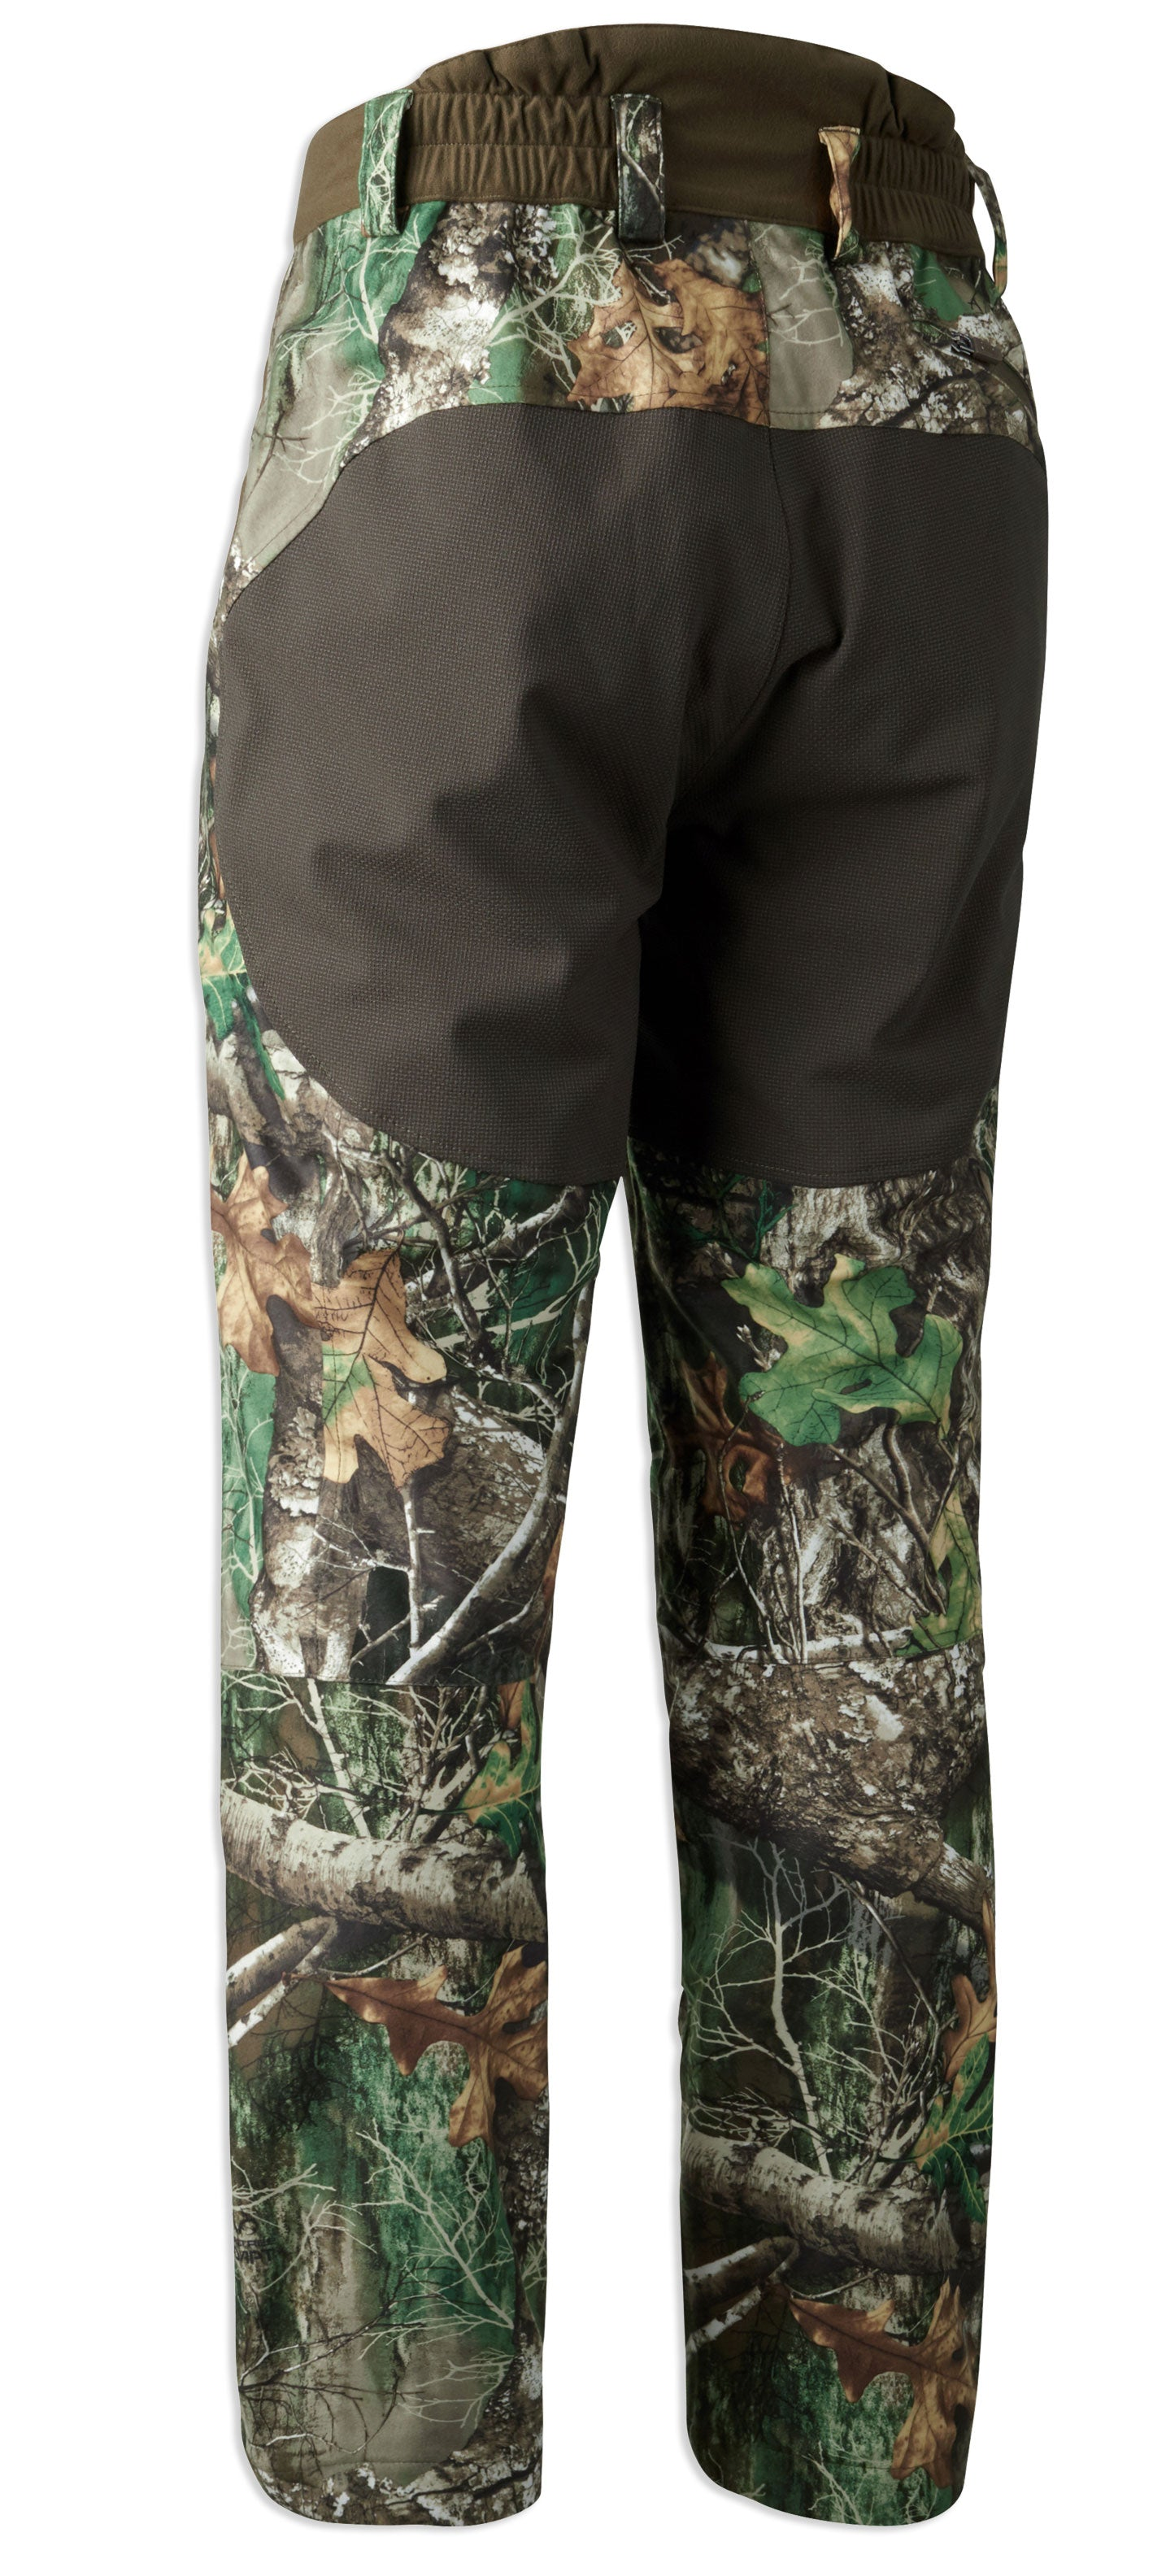 rear view Deer-x Dura reinforcement on wear points for a stretchable tough reinforcement without compromising movement